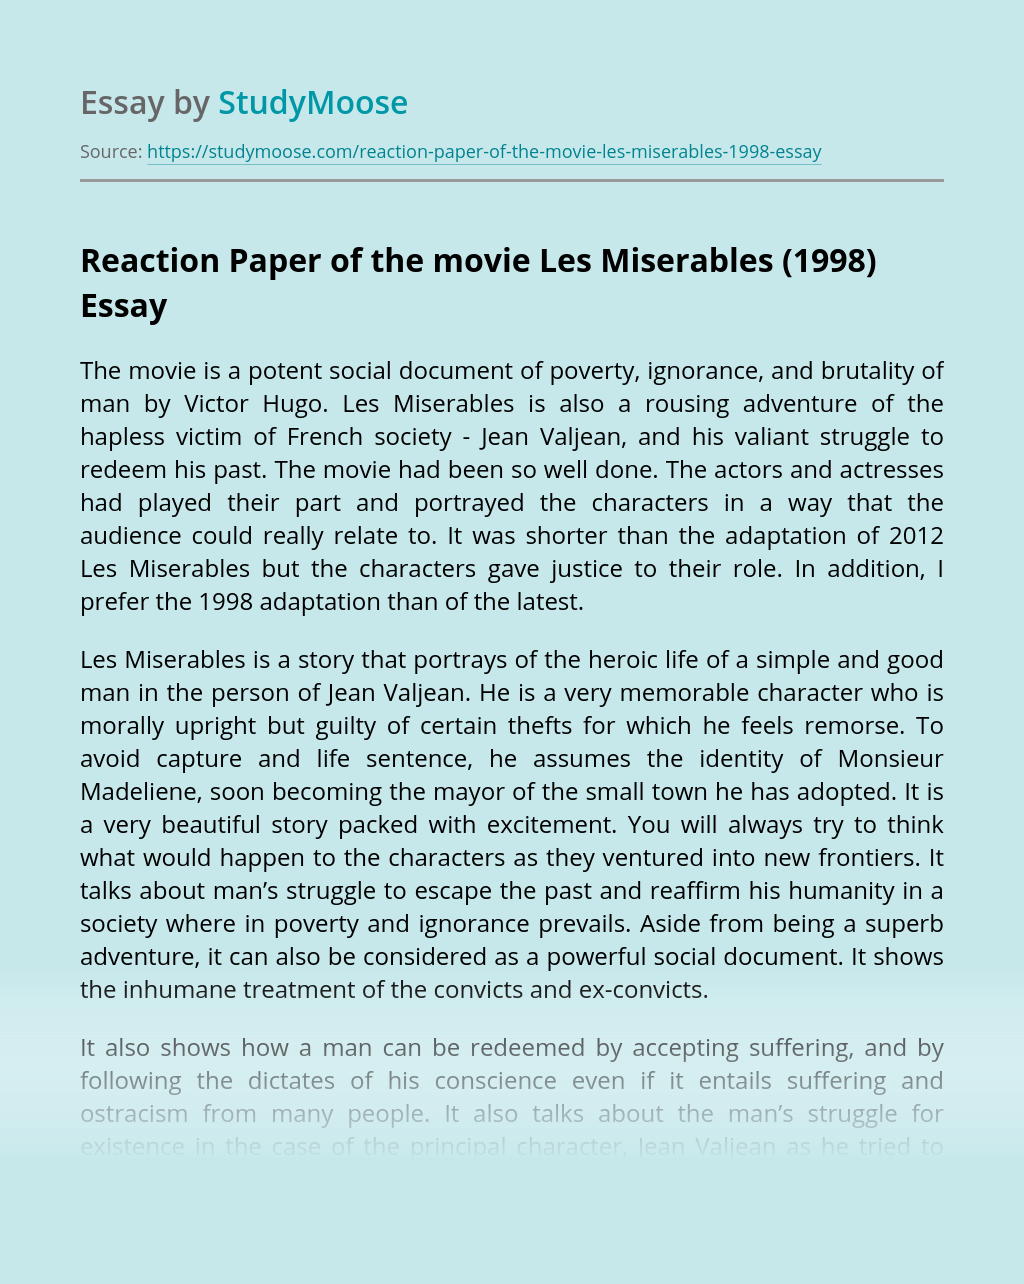 Reaction Paper of the movie Les Miserables (1998)